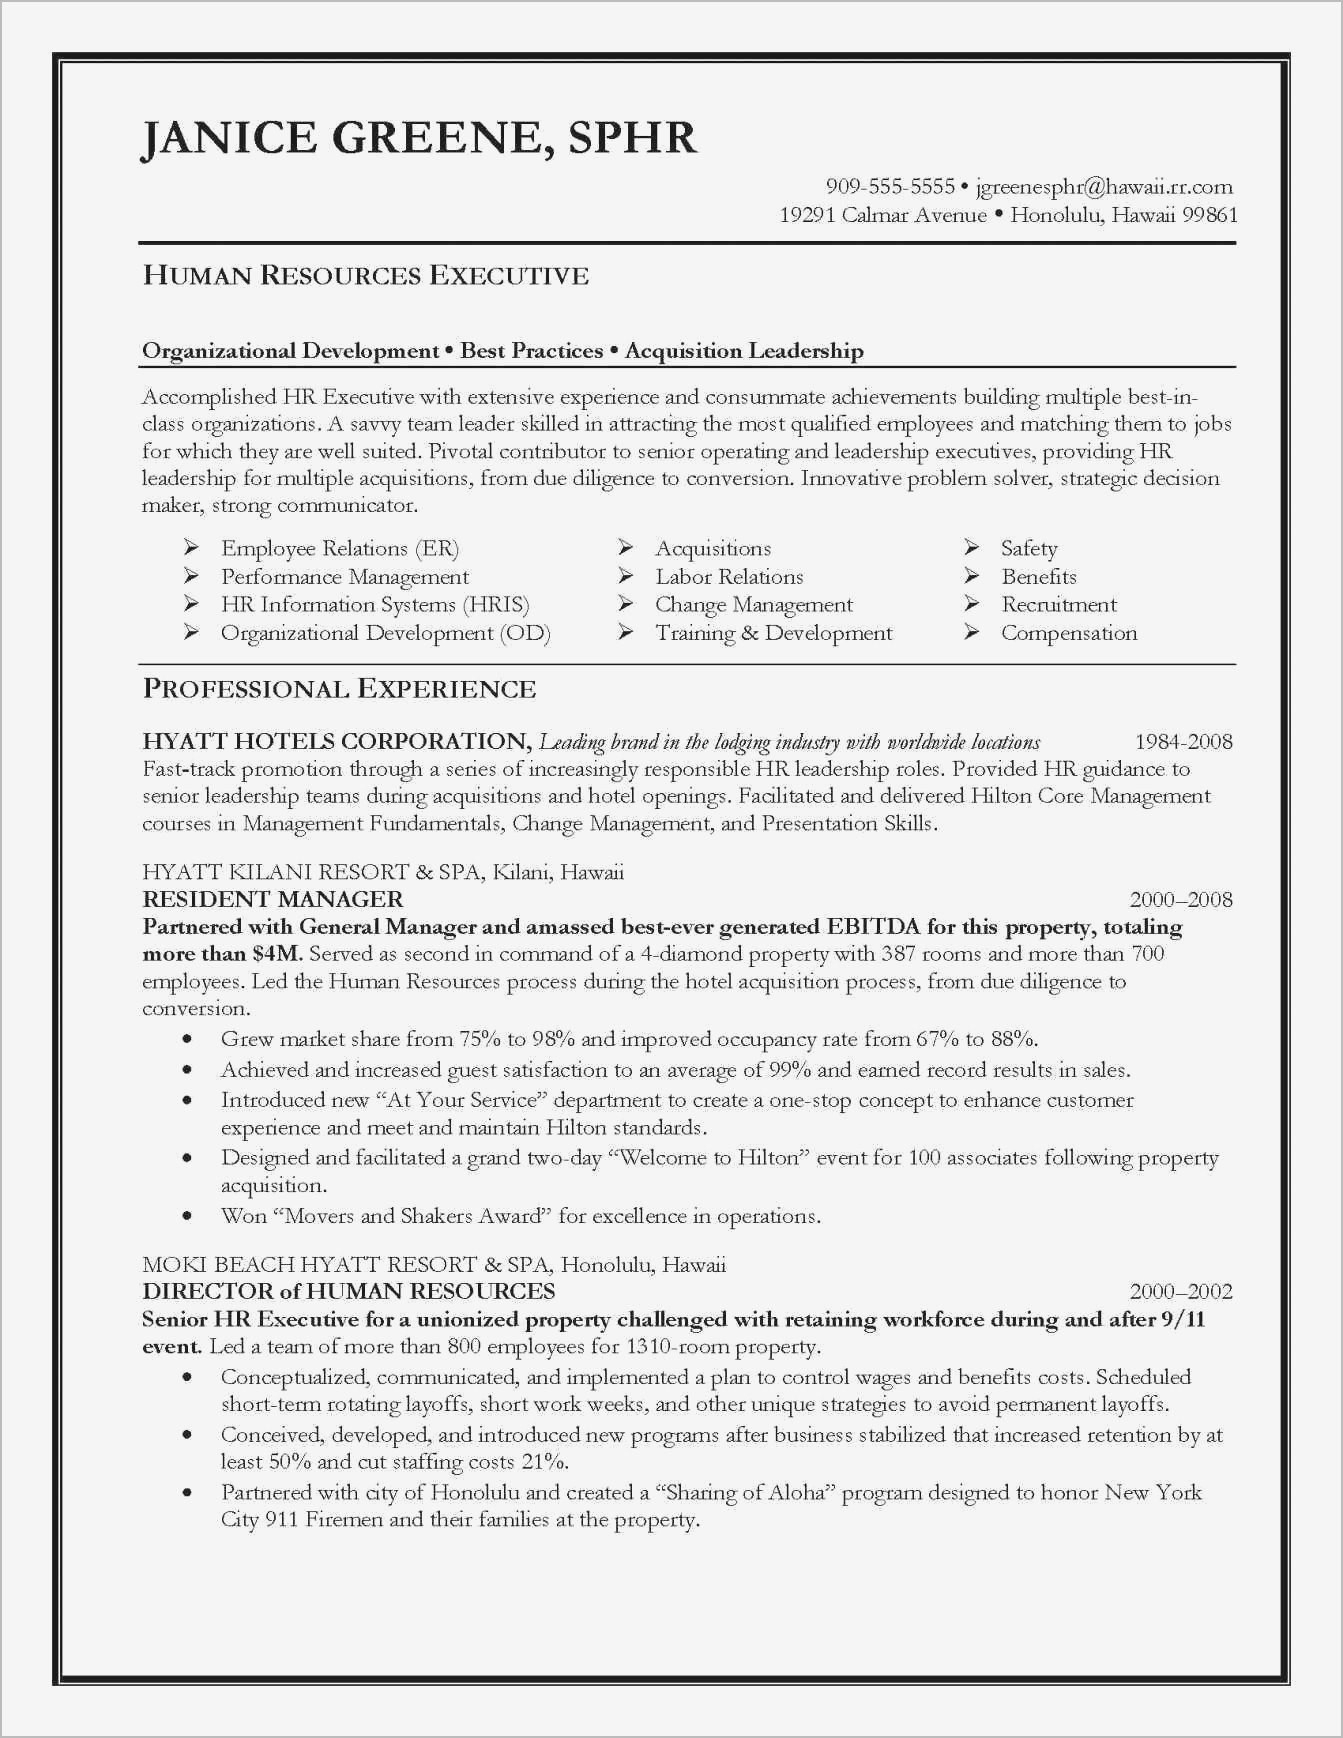 Free Minimalist Resume Template - Winway Resume Free Best where Can I Post My Resume Beautiful